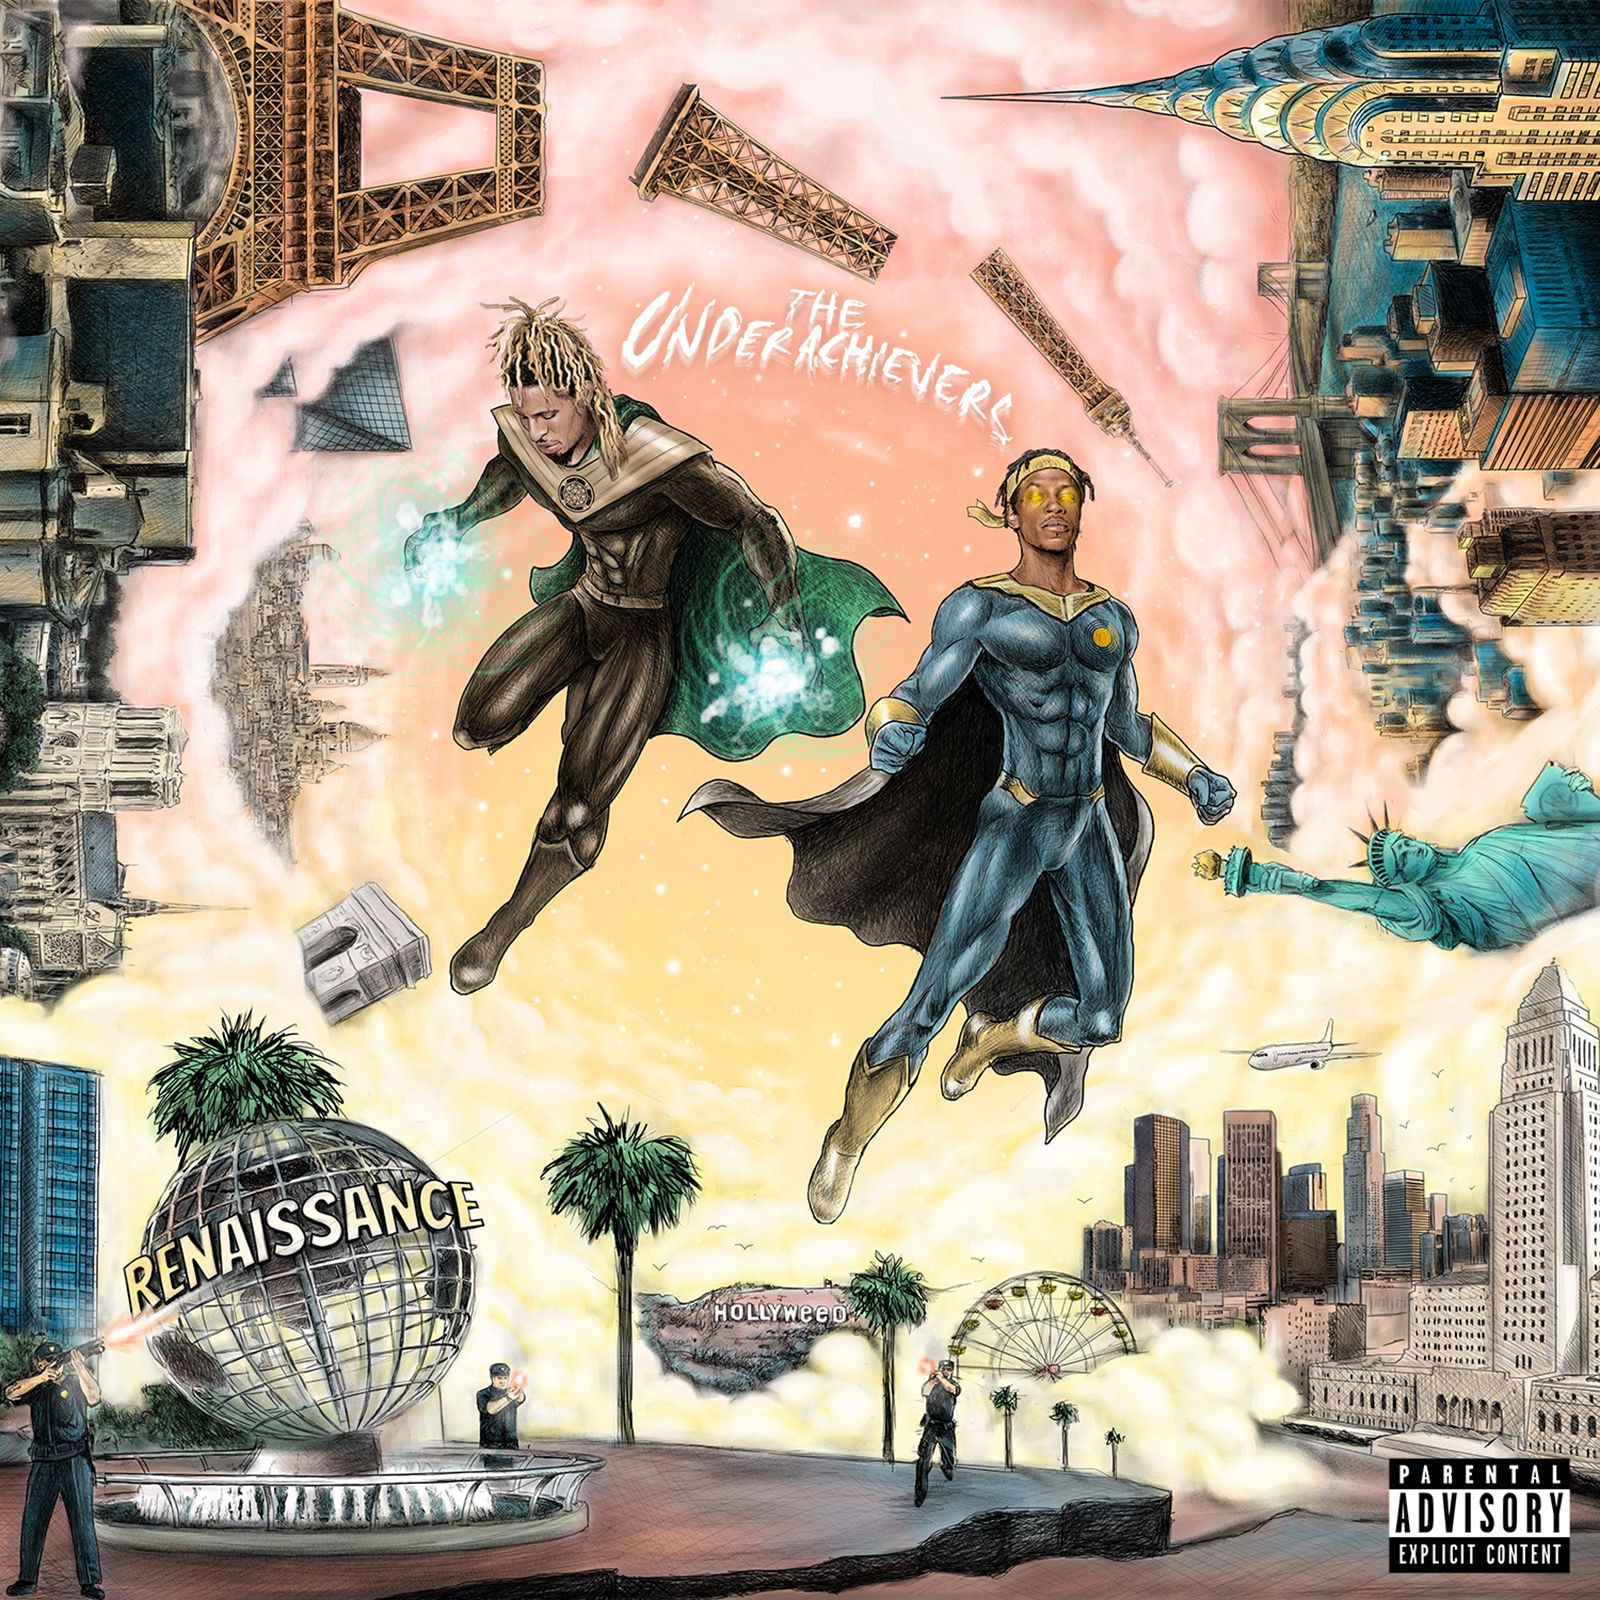 Stream The Underachievers (@THEUALIFESTYLE)'s New Album 'Renaissance' https://t.co/OfR90ZGJ4l https://t.co/i5JJDVImIf